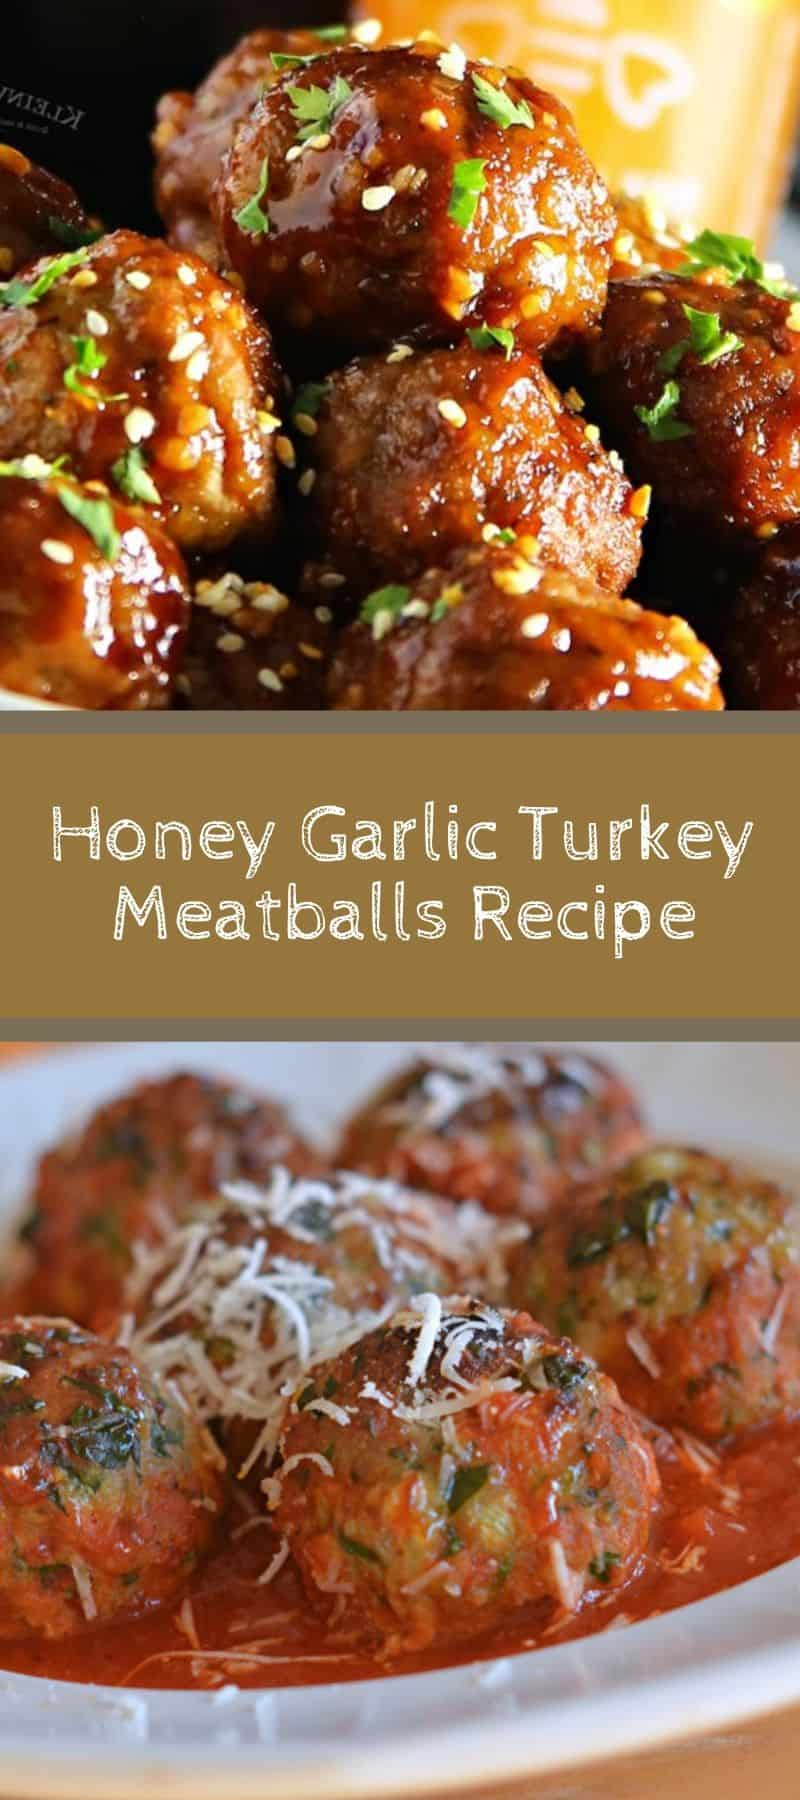 Honey Garlic Turkey Meatballs Recipe 3